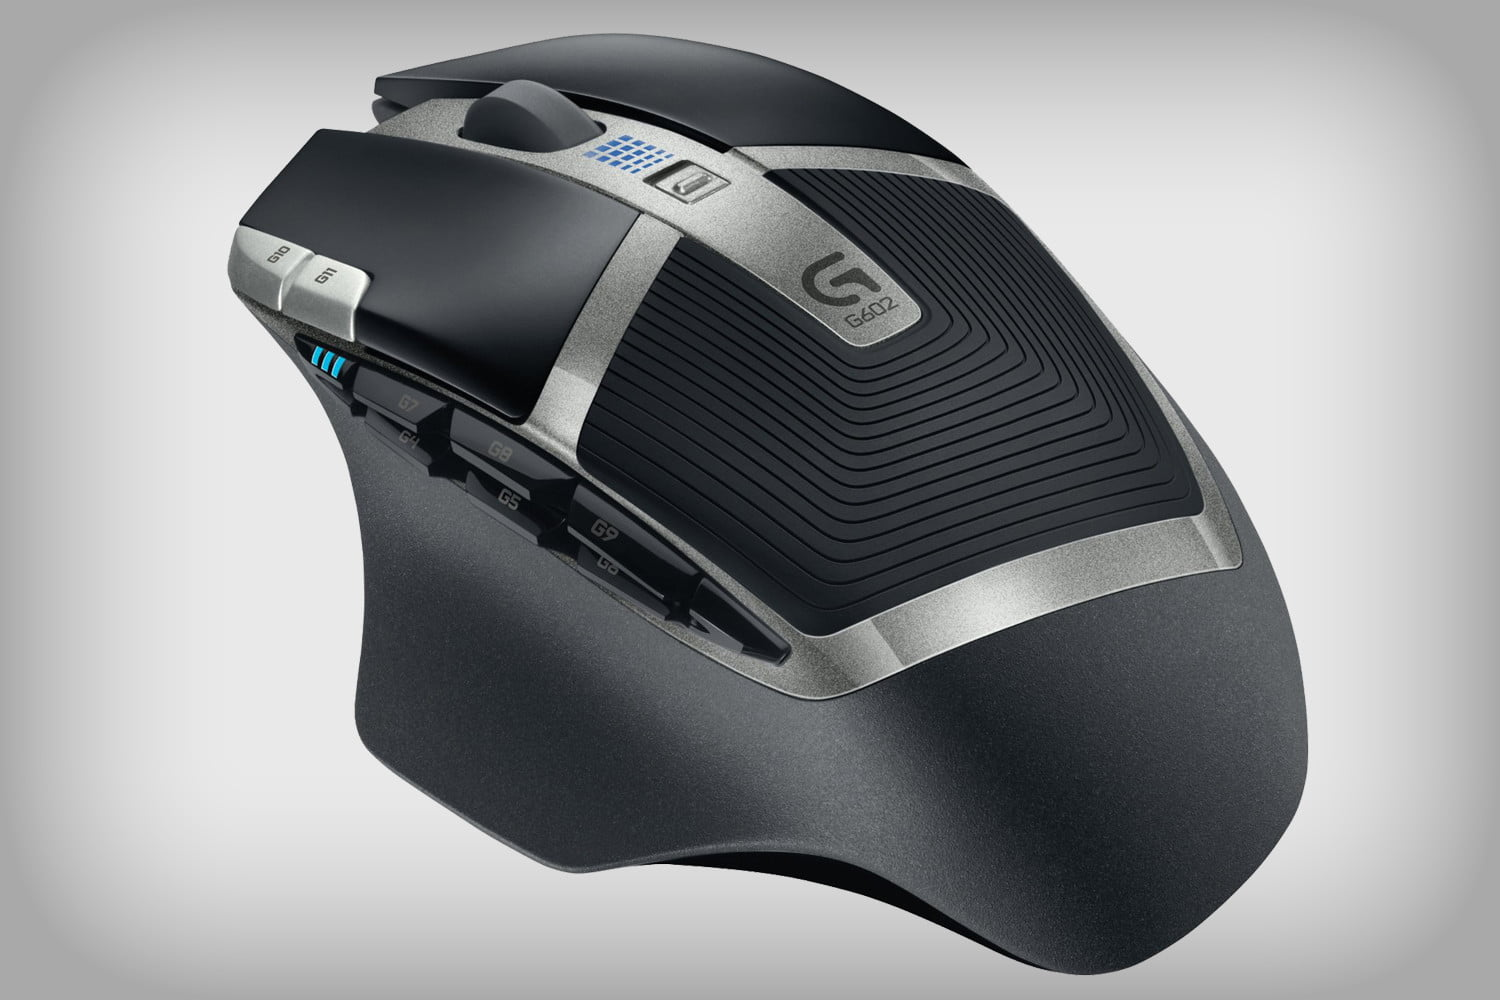 [Amazon Canada] Logitech G602 Wireless Gaming Mouse 49.99$